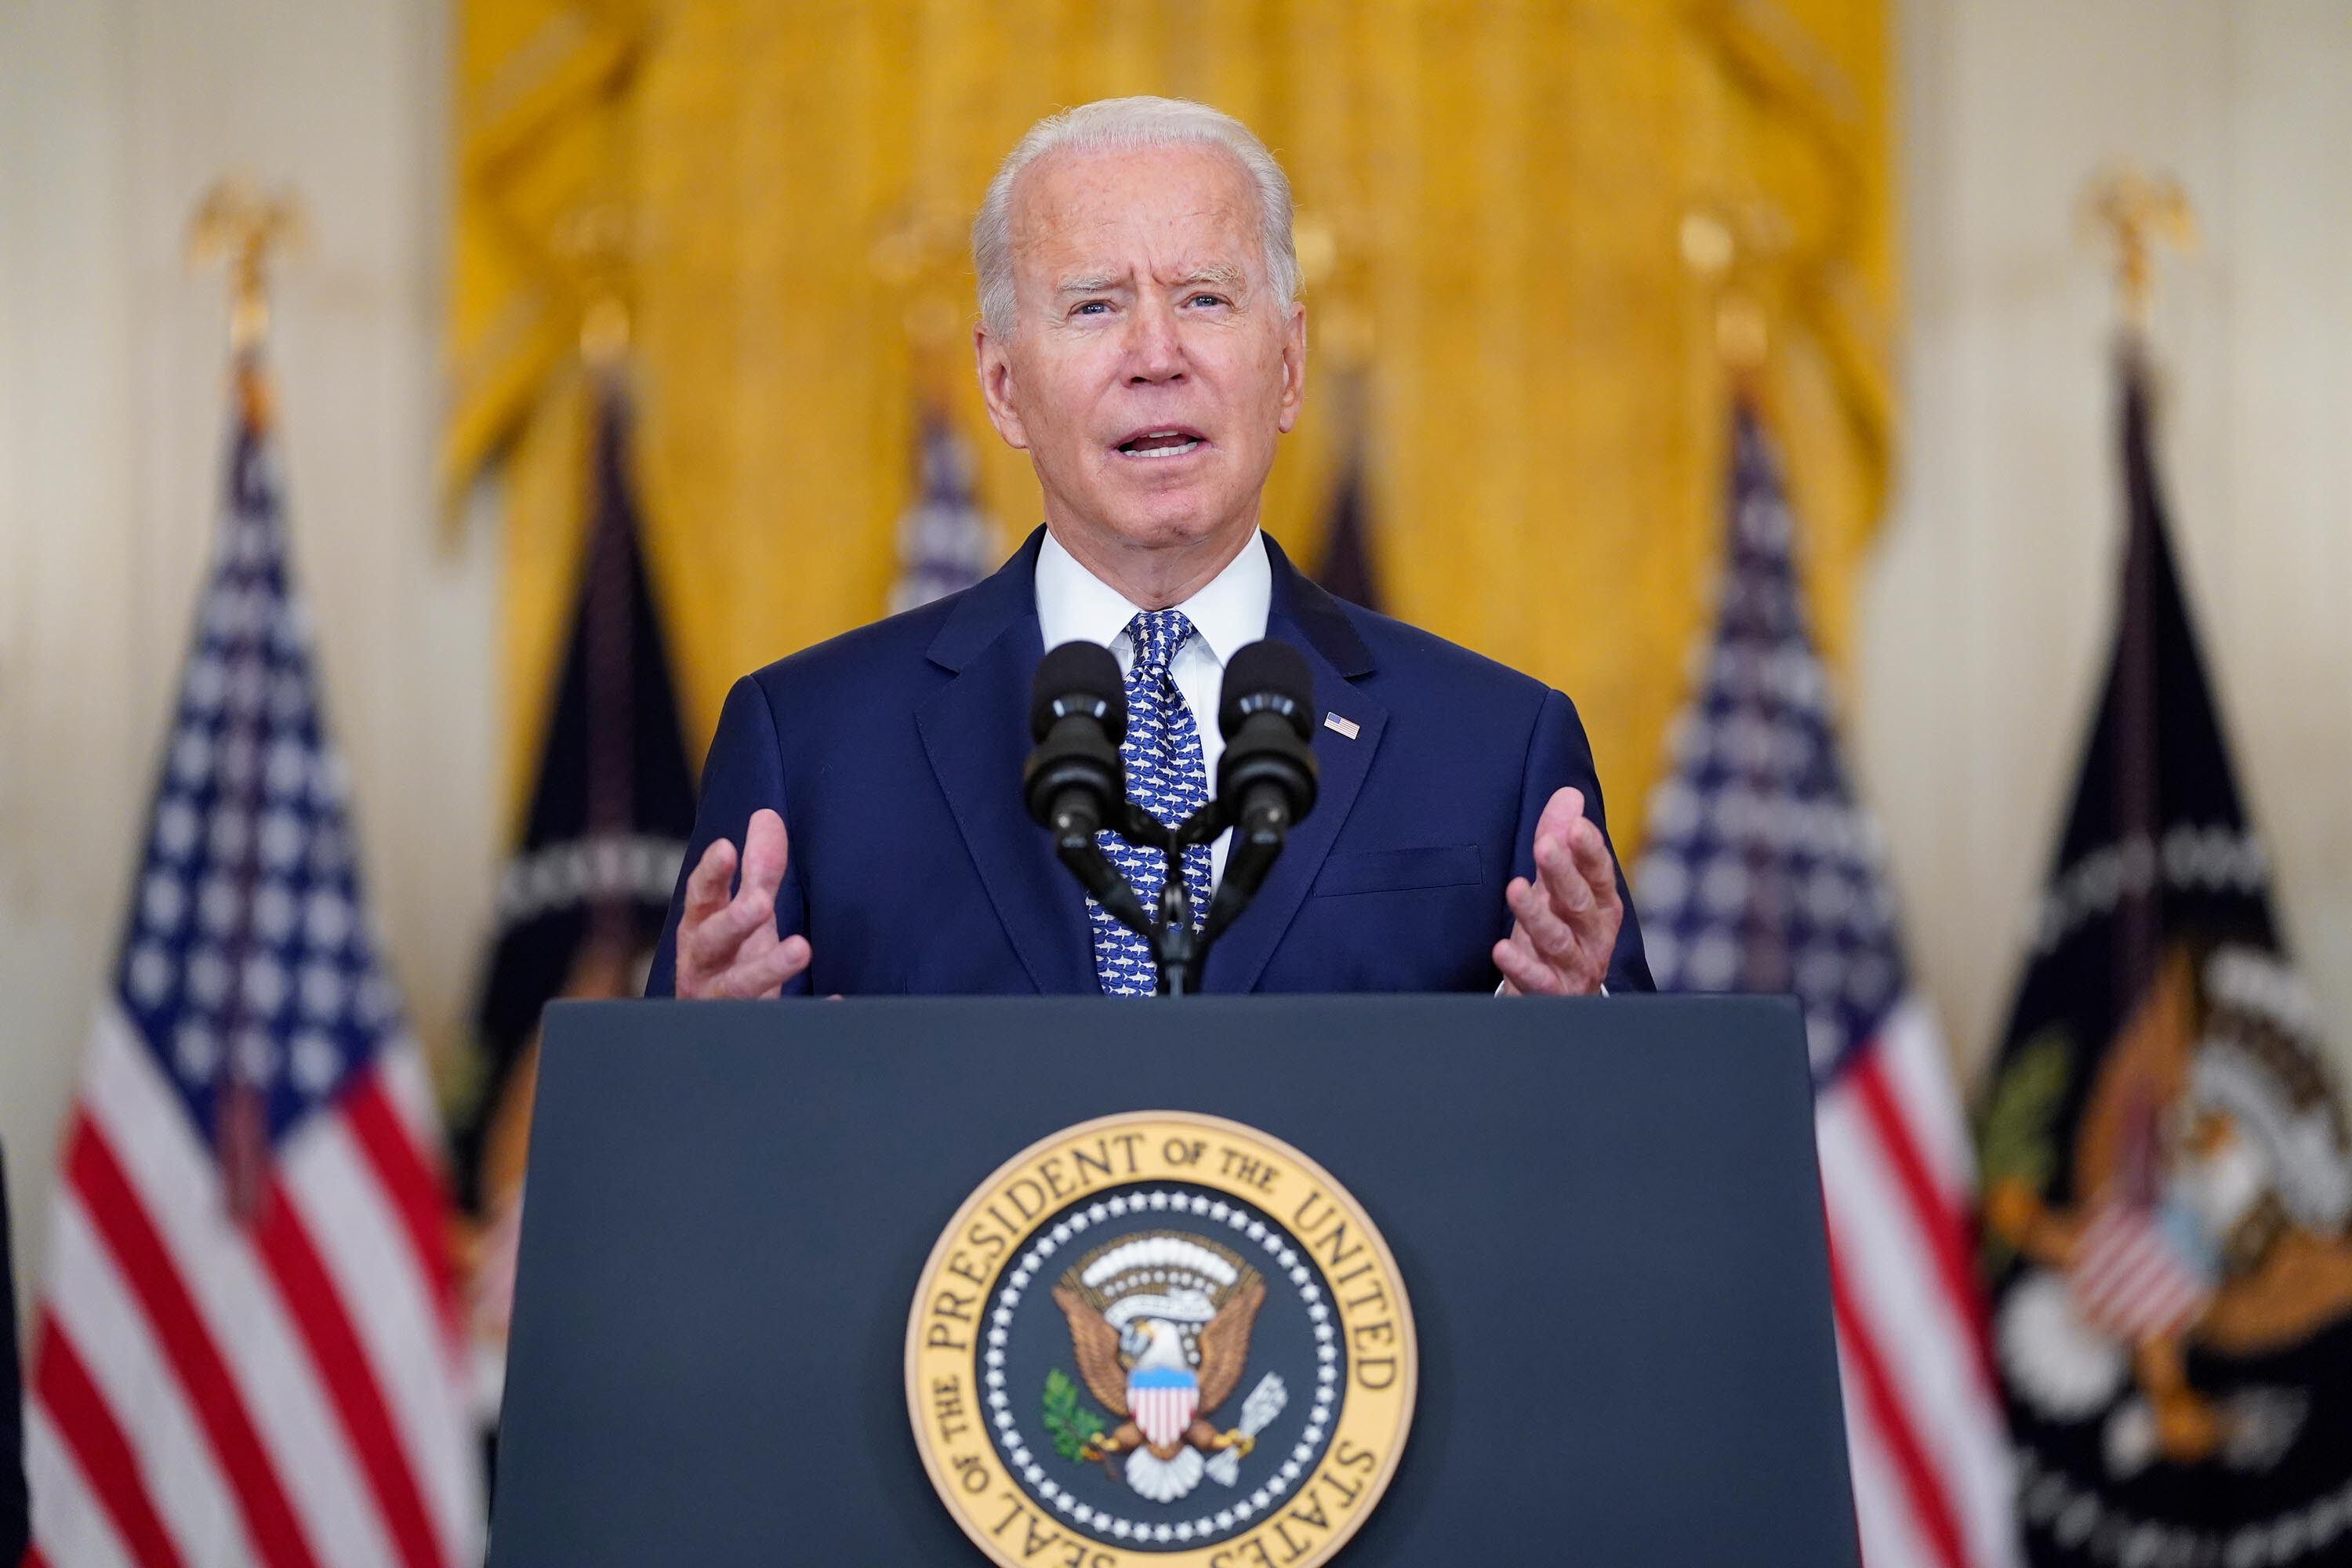 Biden says he respects Cuomo's decision to resign, but praises his record on policy